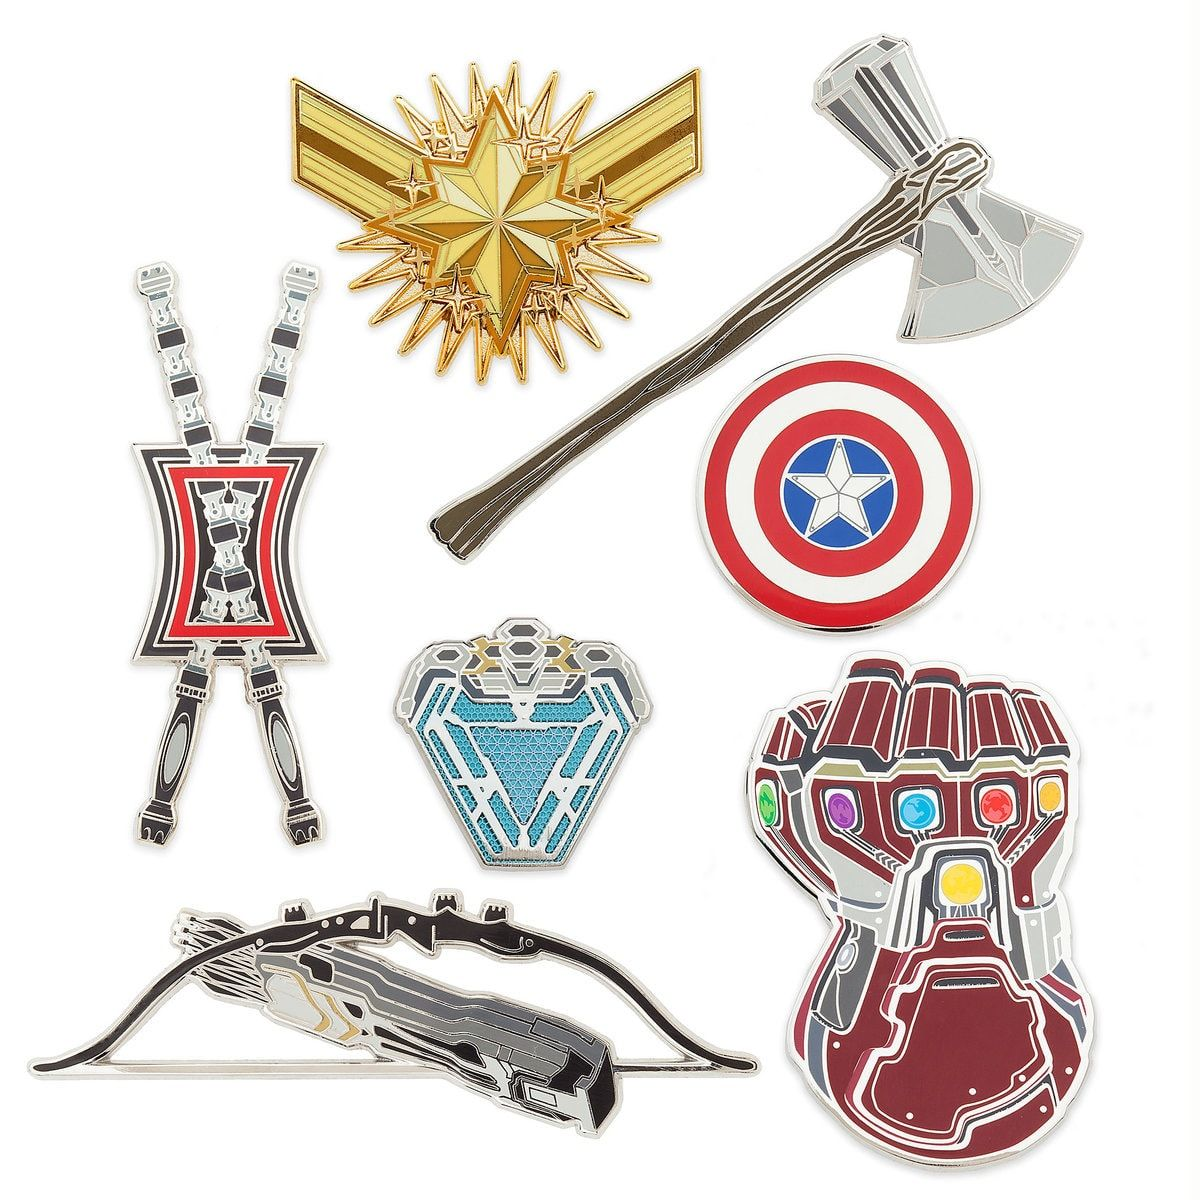 Marvels Avengers: Endgame Pin Set Out Now